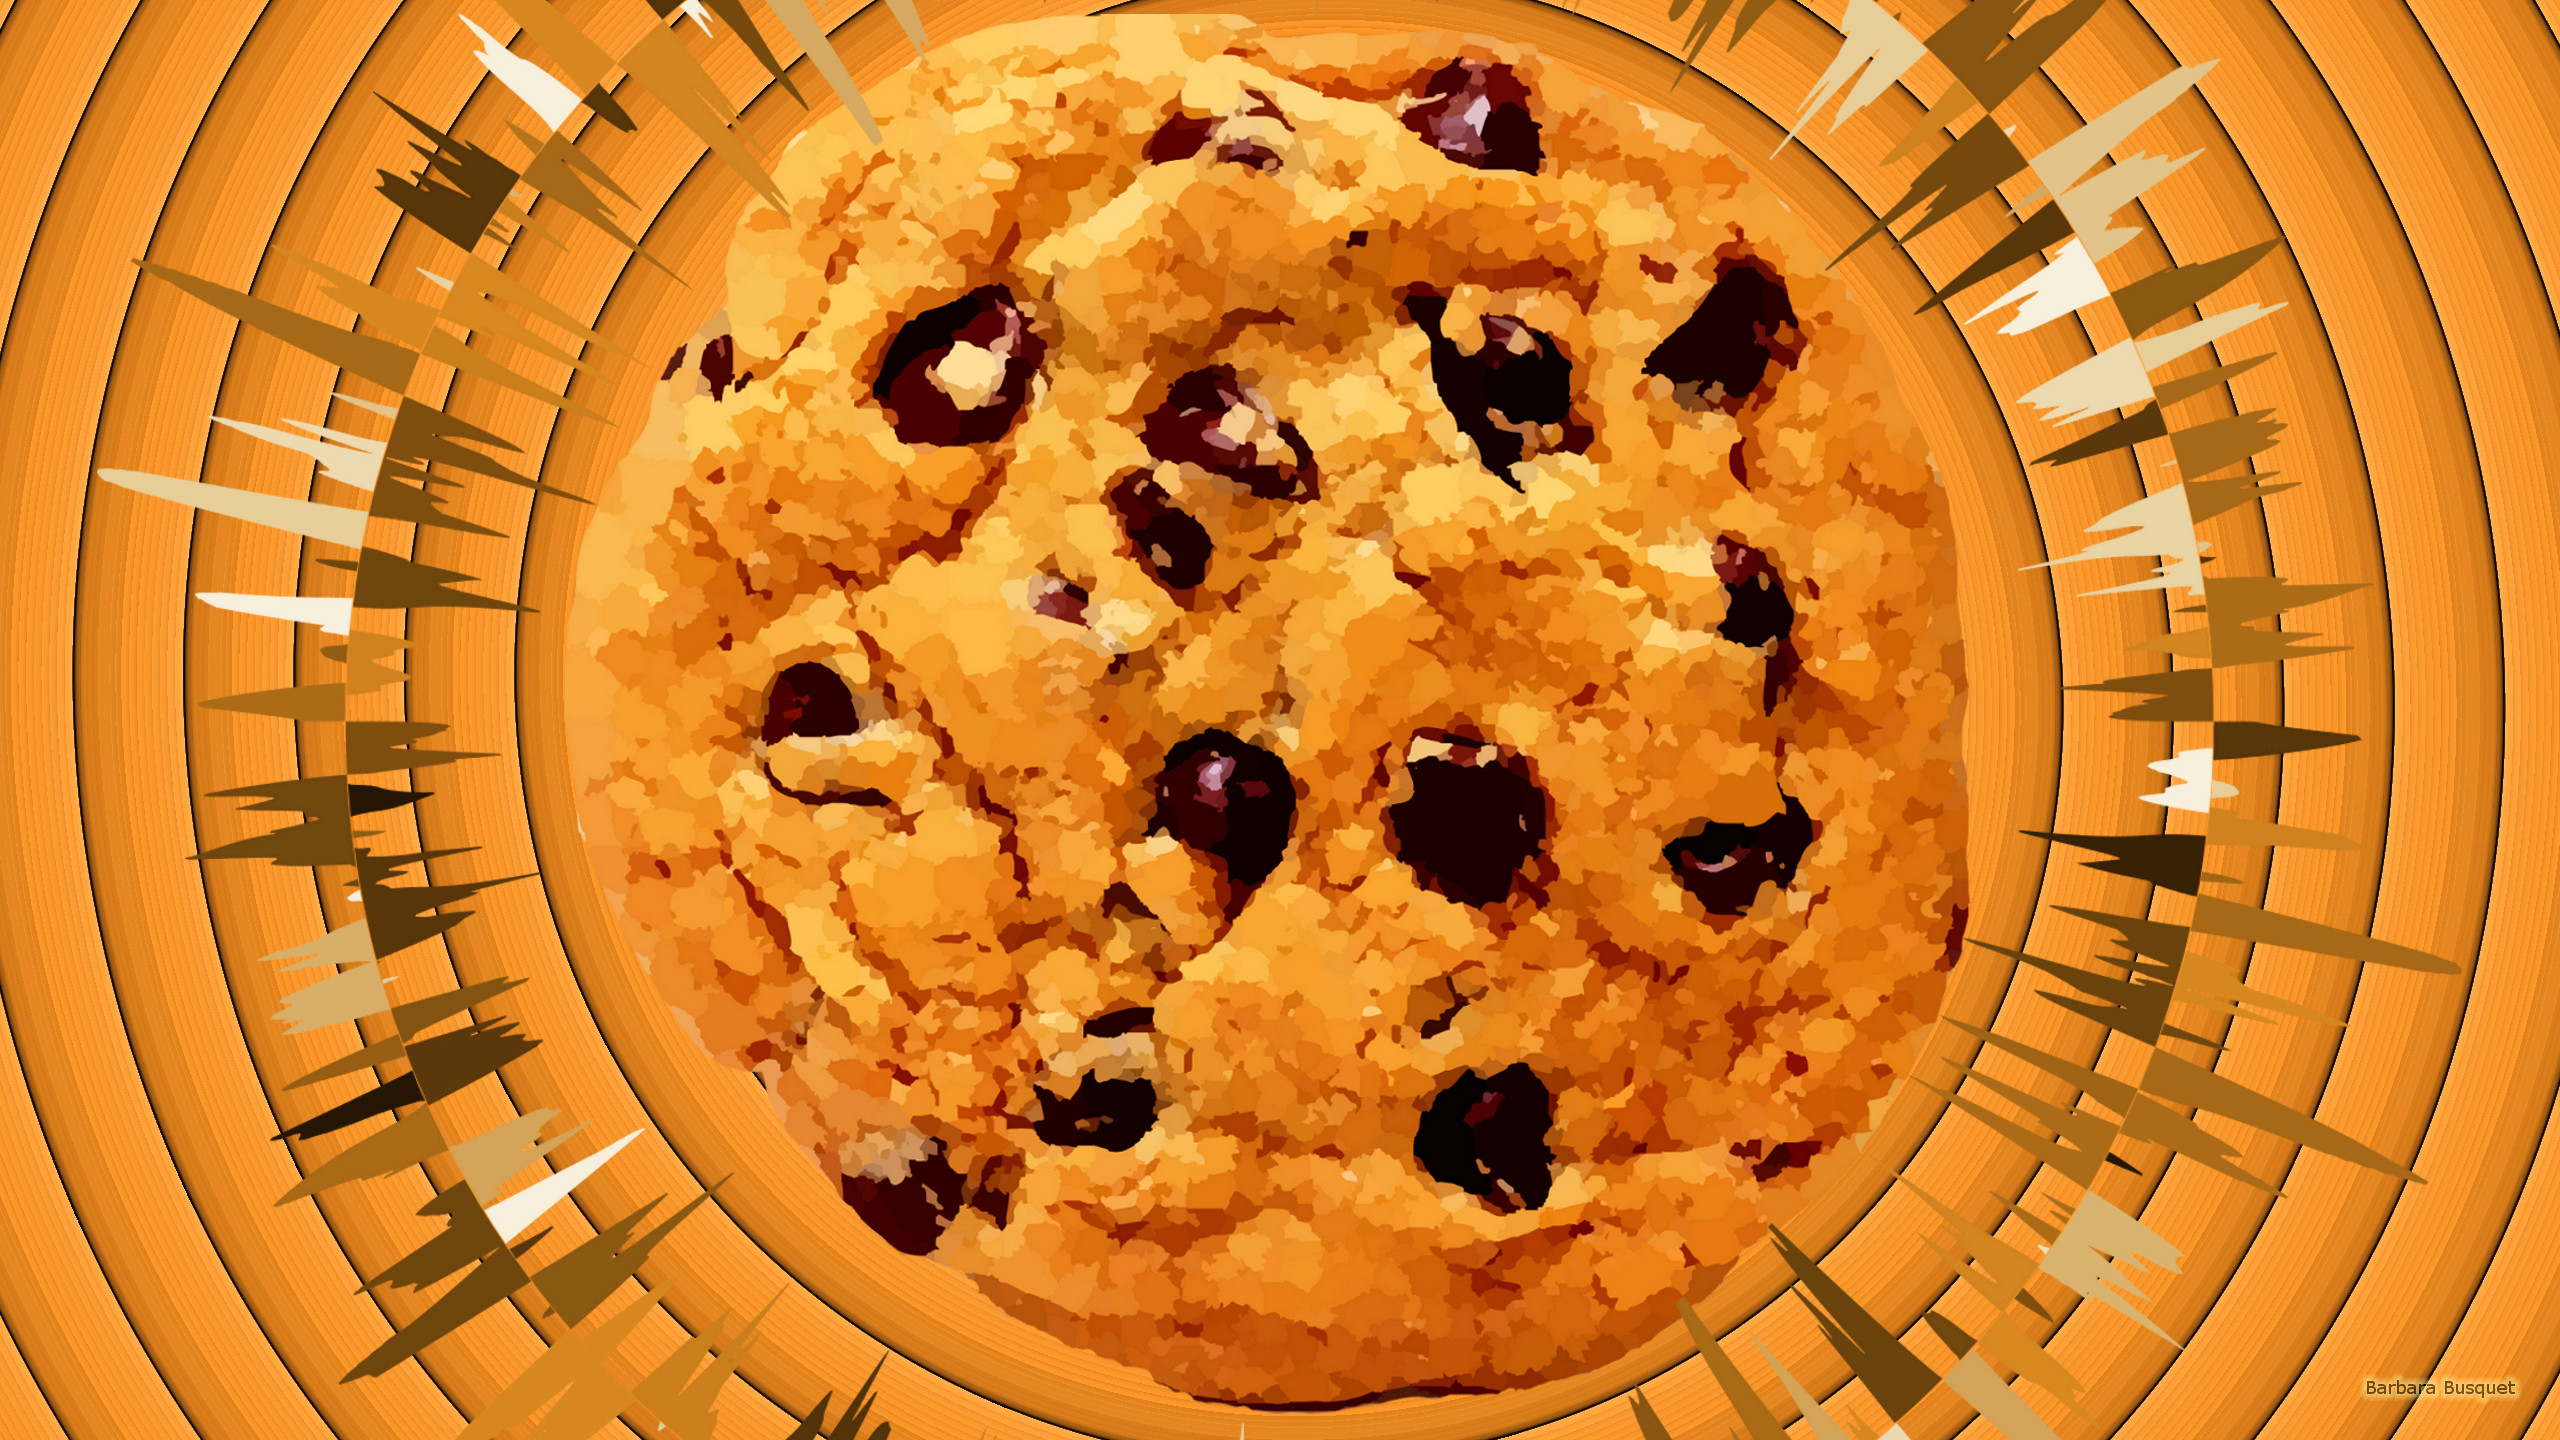 Chocolate Chip Cookies Barbaras Hd Wallpapers